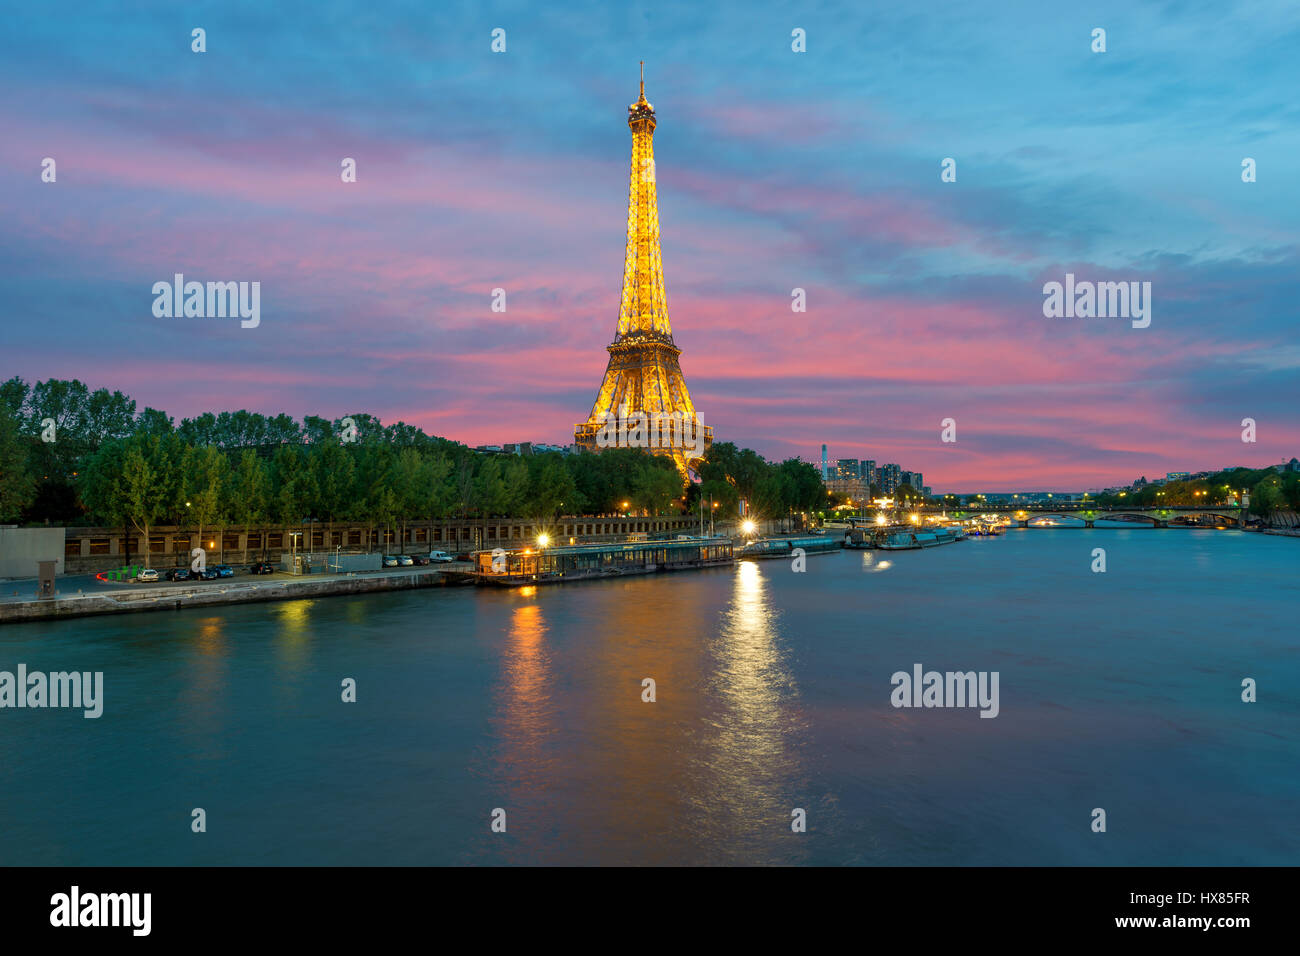 PARIS, FRANCE - May 8, 2016 : Cityscape of Paris, France with Eiffel Tower at night on . The Eiffel tower is the - Stock Image